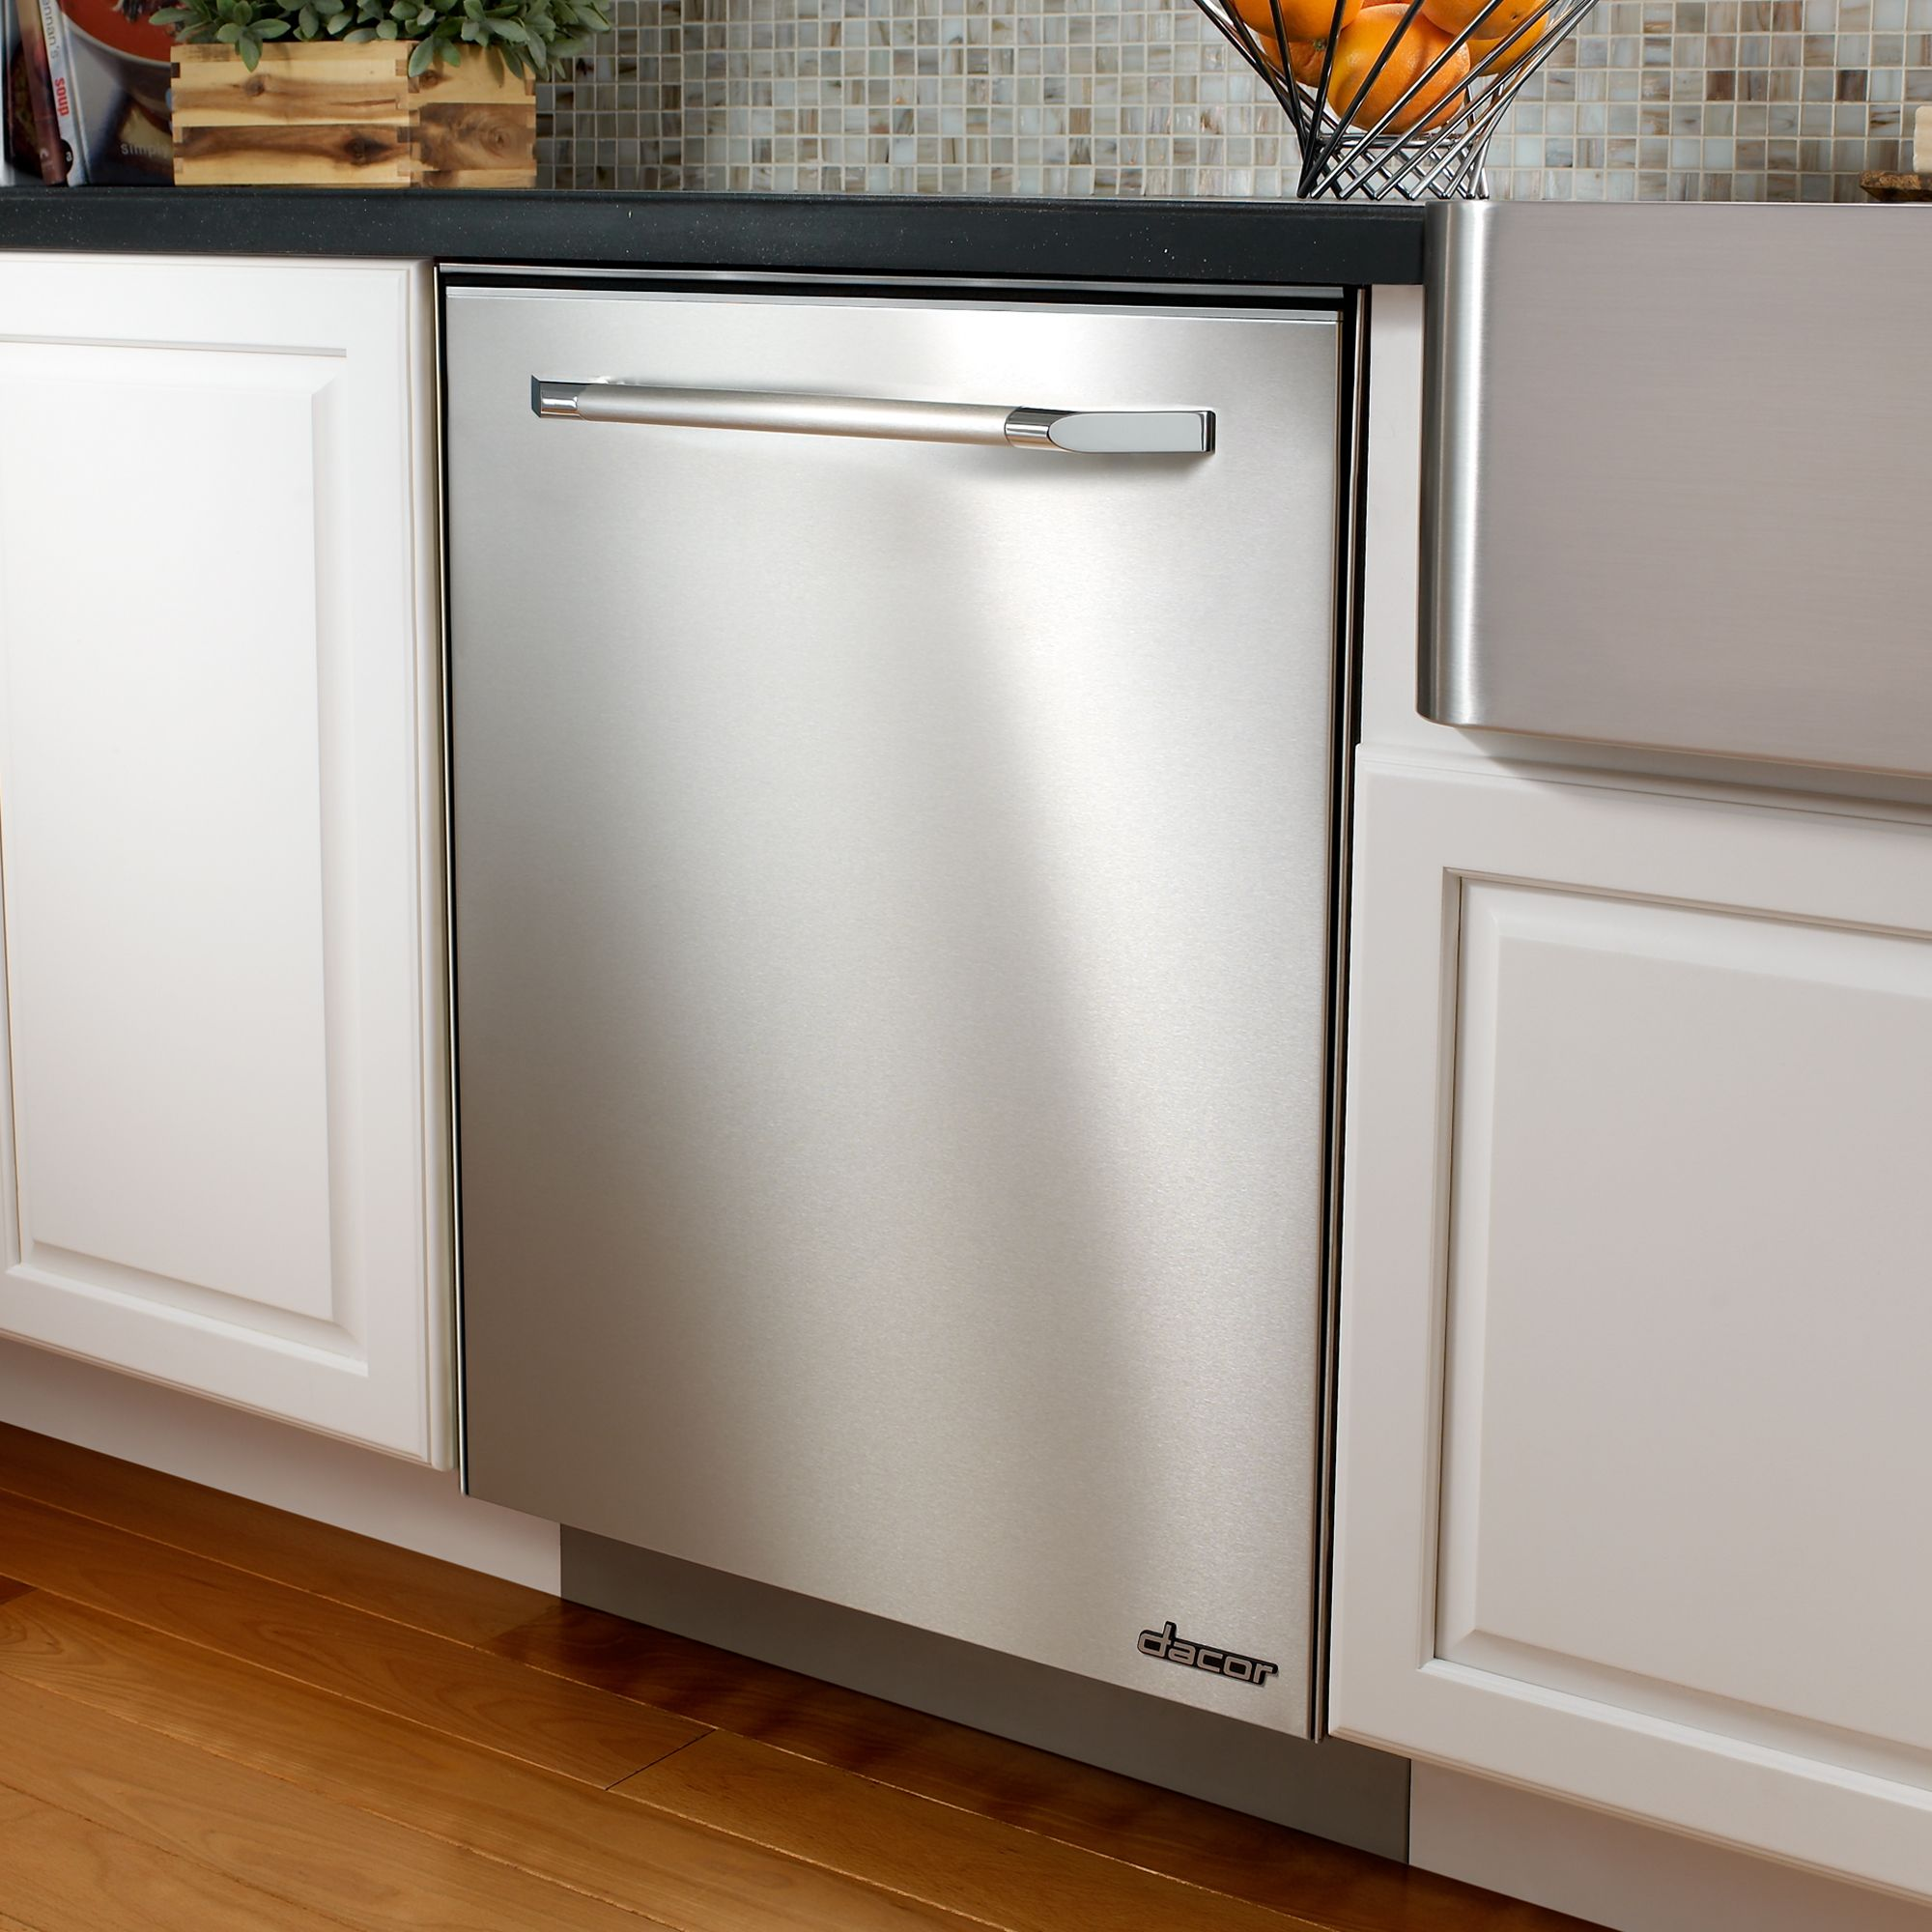 Dacor Renaissance 24 in. Built-In Dishwasher (EDWH24S)